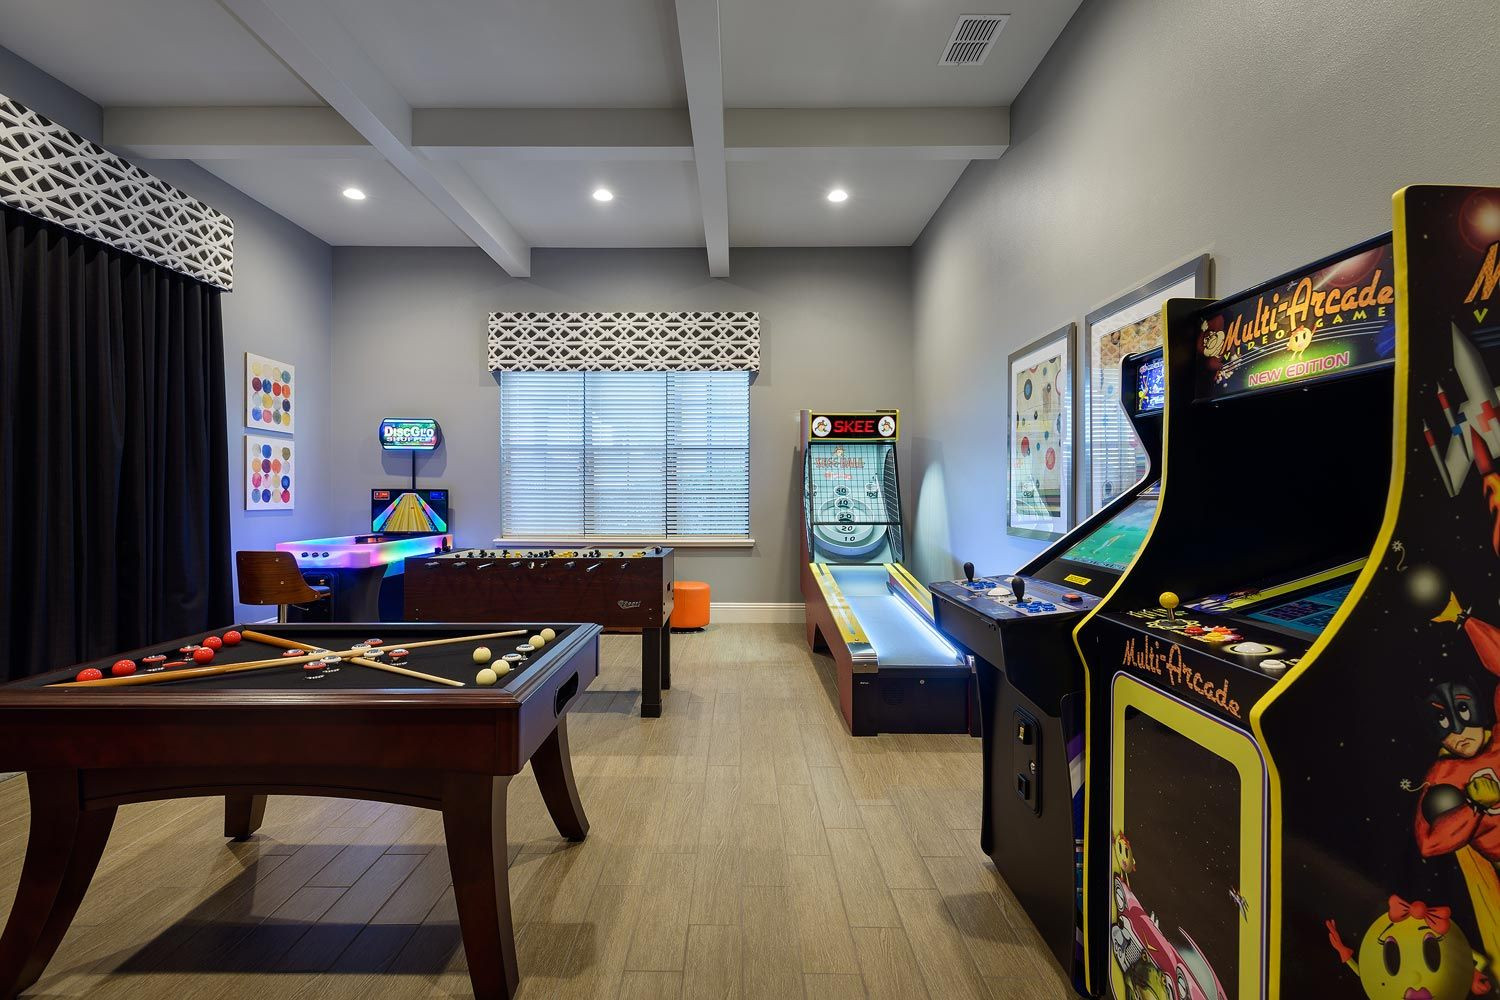 Best ideas about Arcade Game Room . Save or Pin With both old school and new arcade games Skee Ball Now.